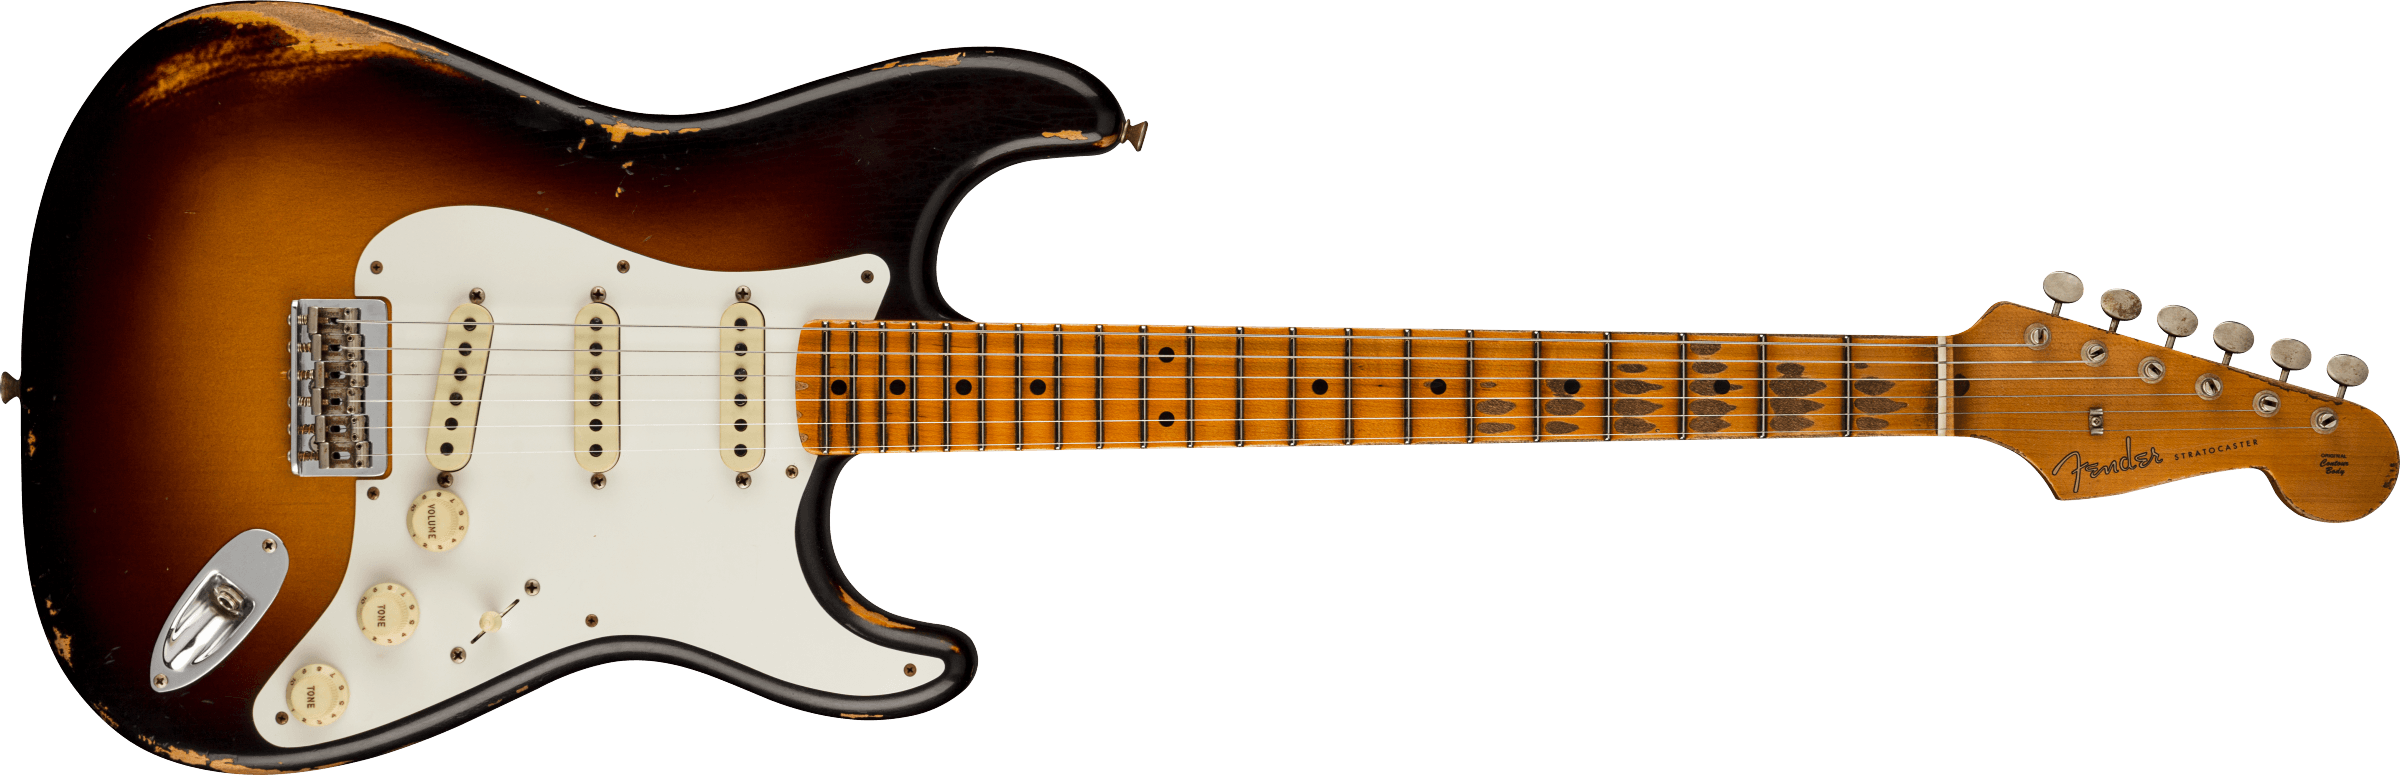 FENDER-Limited-Edition-Troposphere-Strat-Hard-Tail-Heavy-Relic-Maple-Fingerboard-Super-Faded-Aged-2-Color-Sunburst-sku-571005152